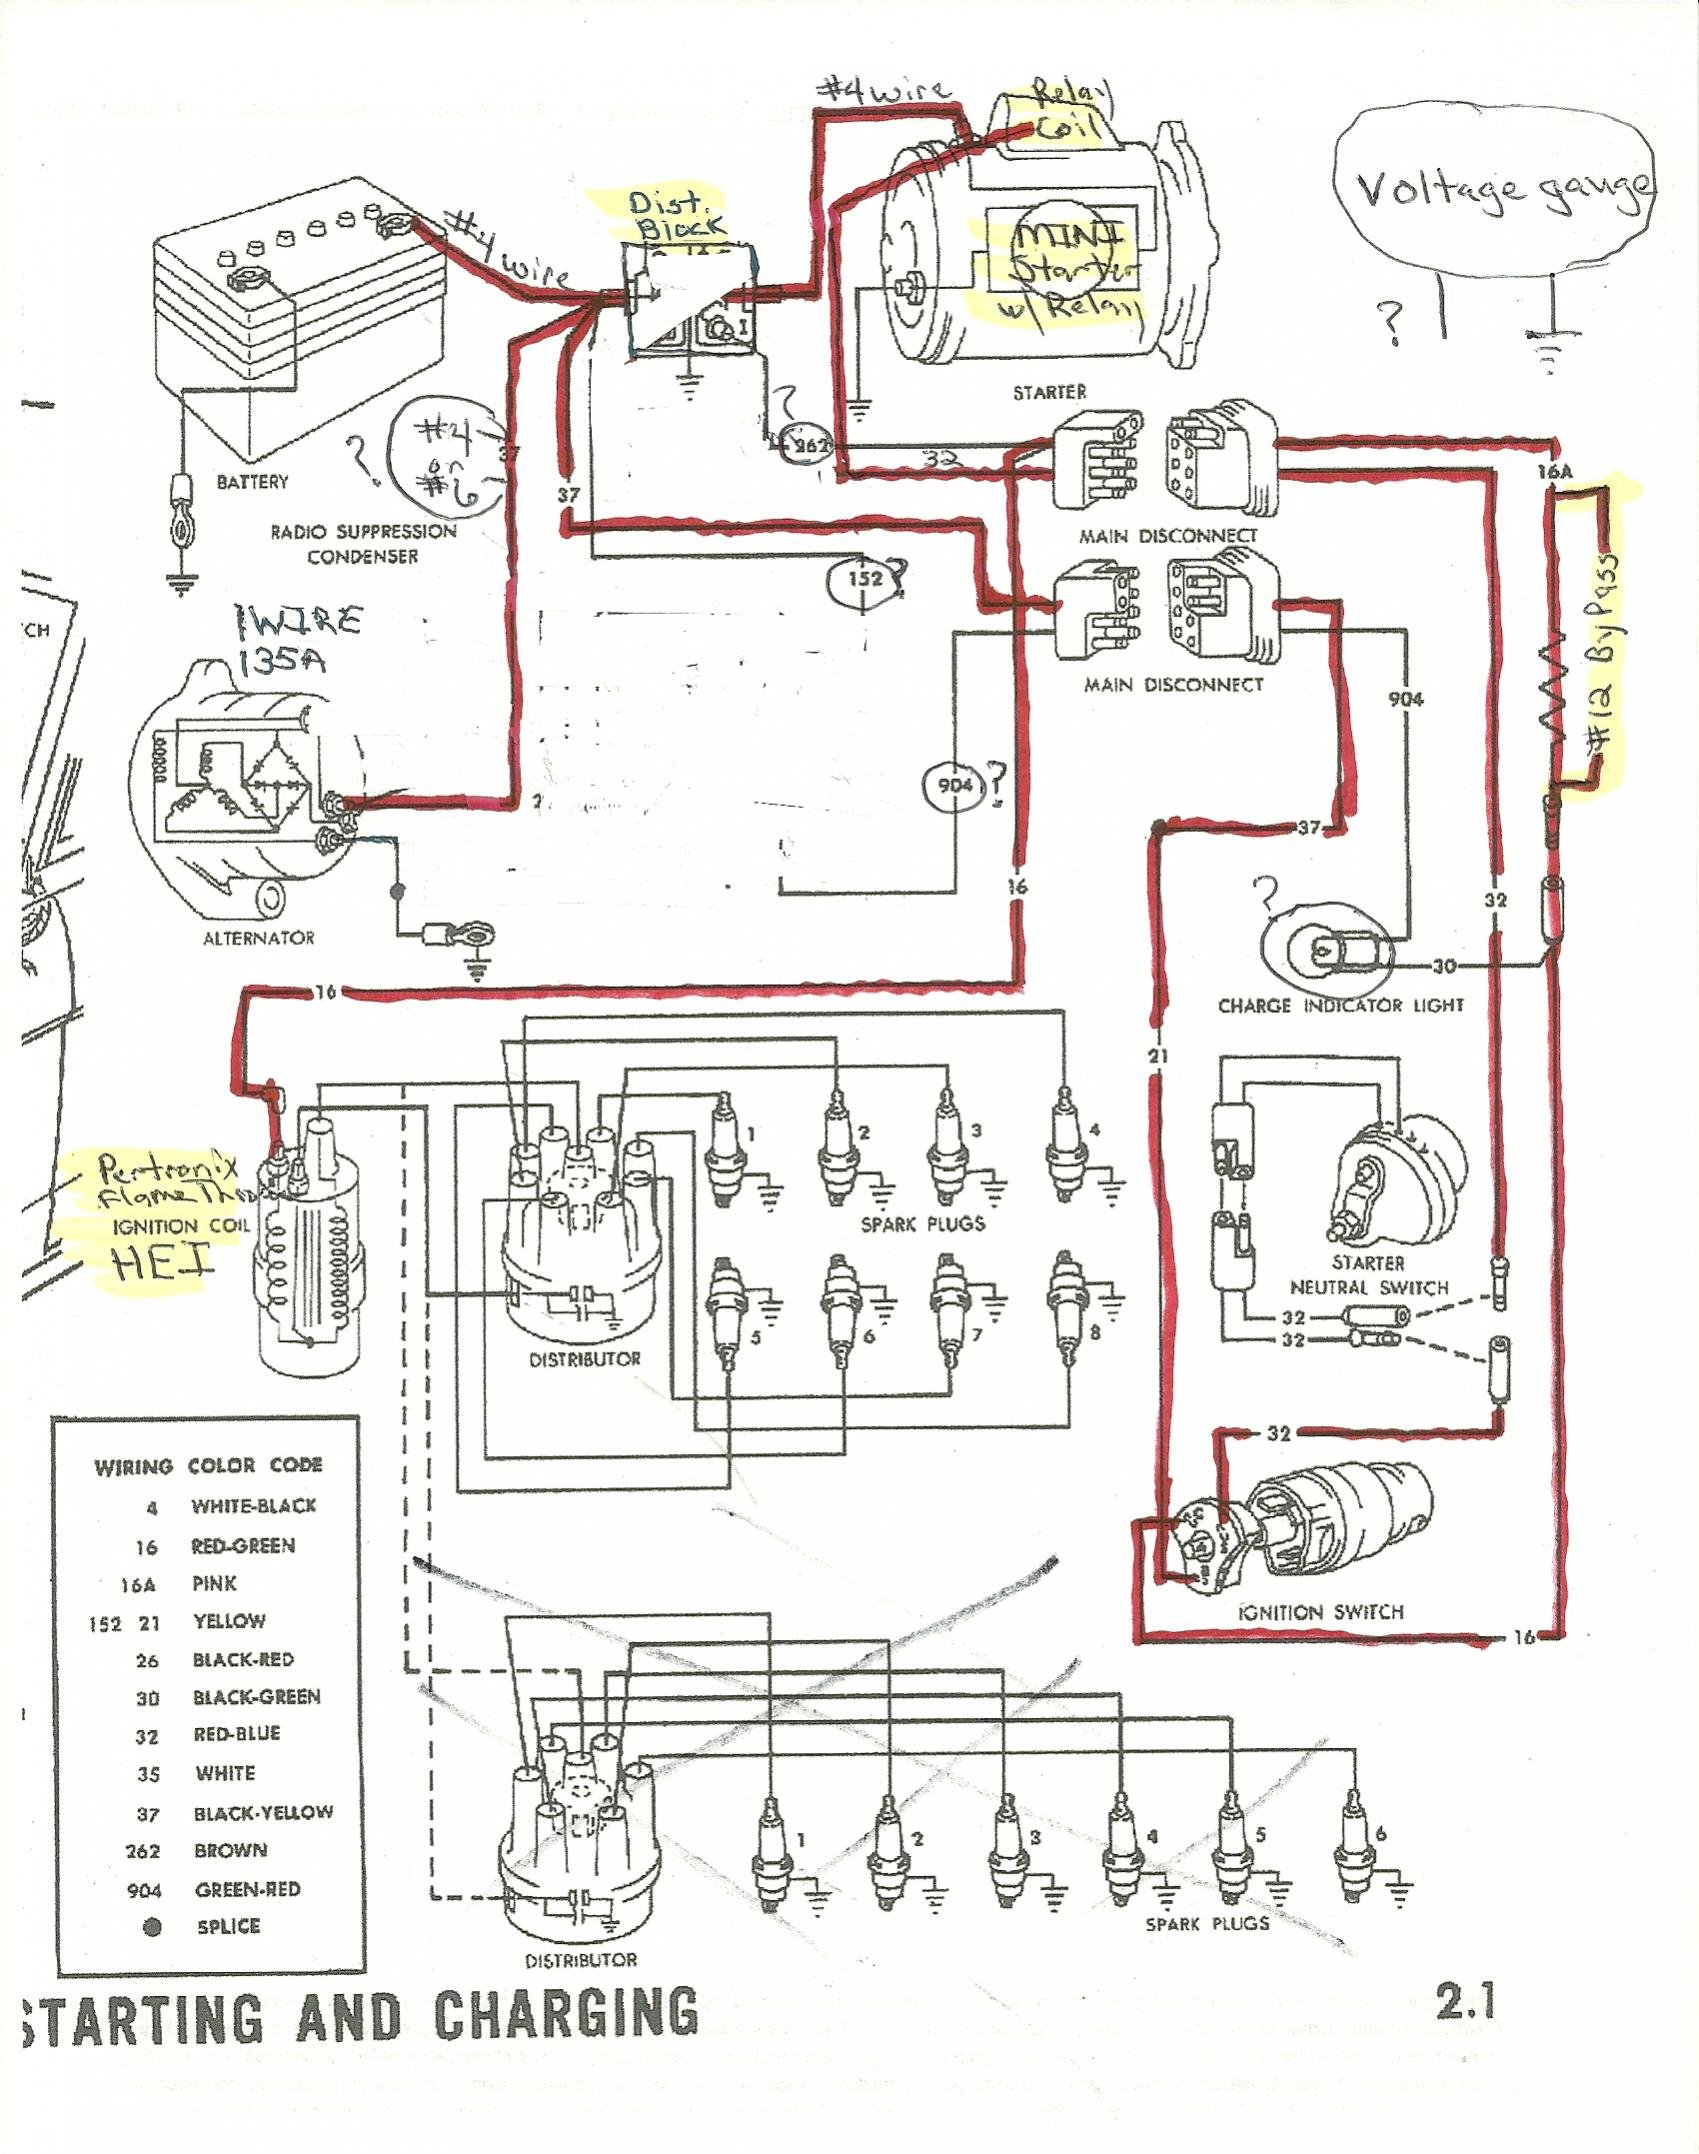 163469d1347246202 1965 alternator starter distributor wiring scan0001 1970 ford mustang mercury cougar original wiring diagram Ford Alternator Wiring Diagram at soozxer.org